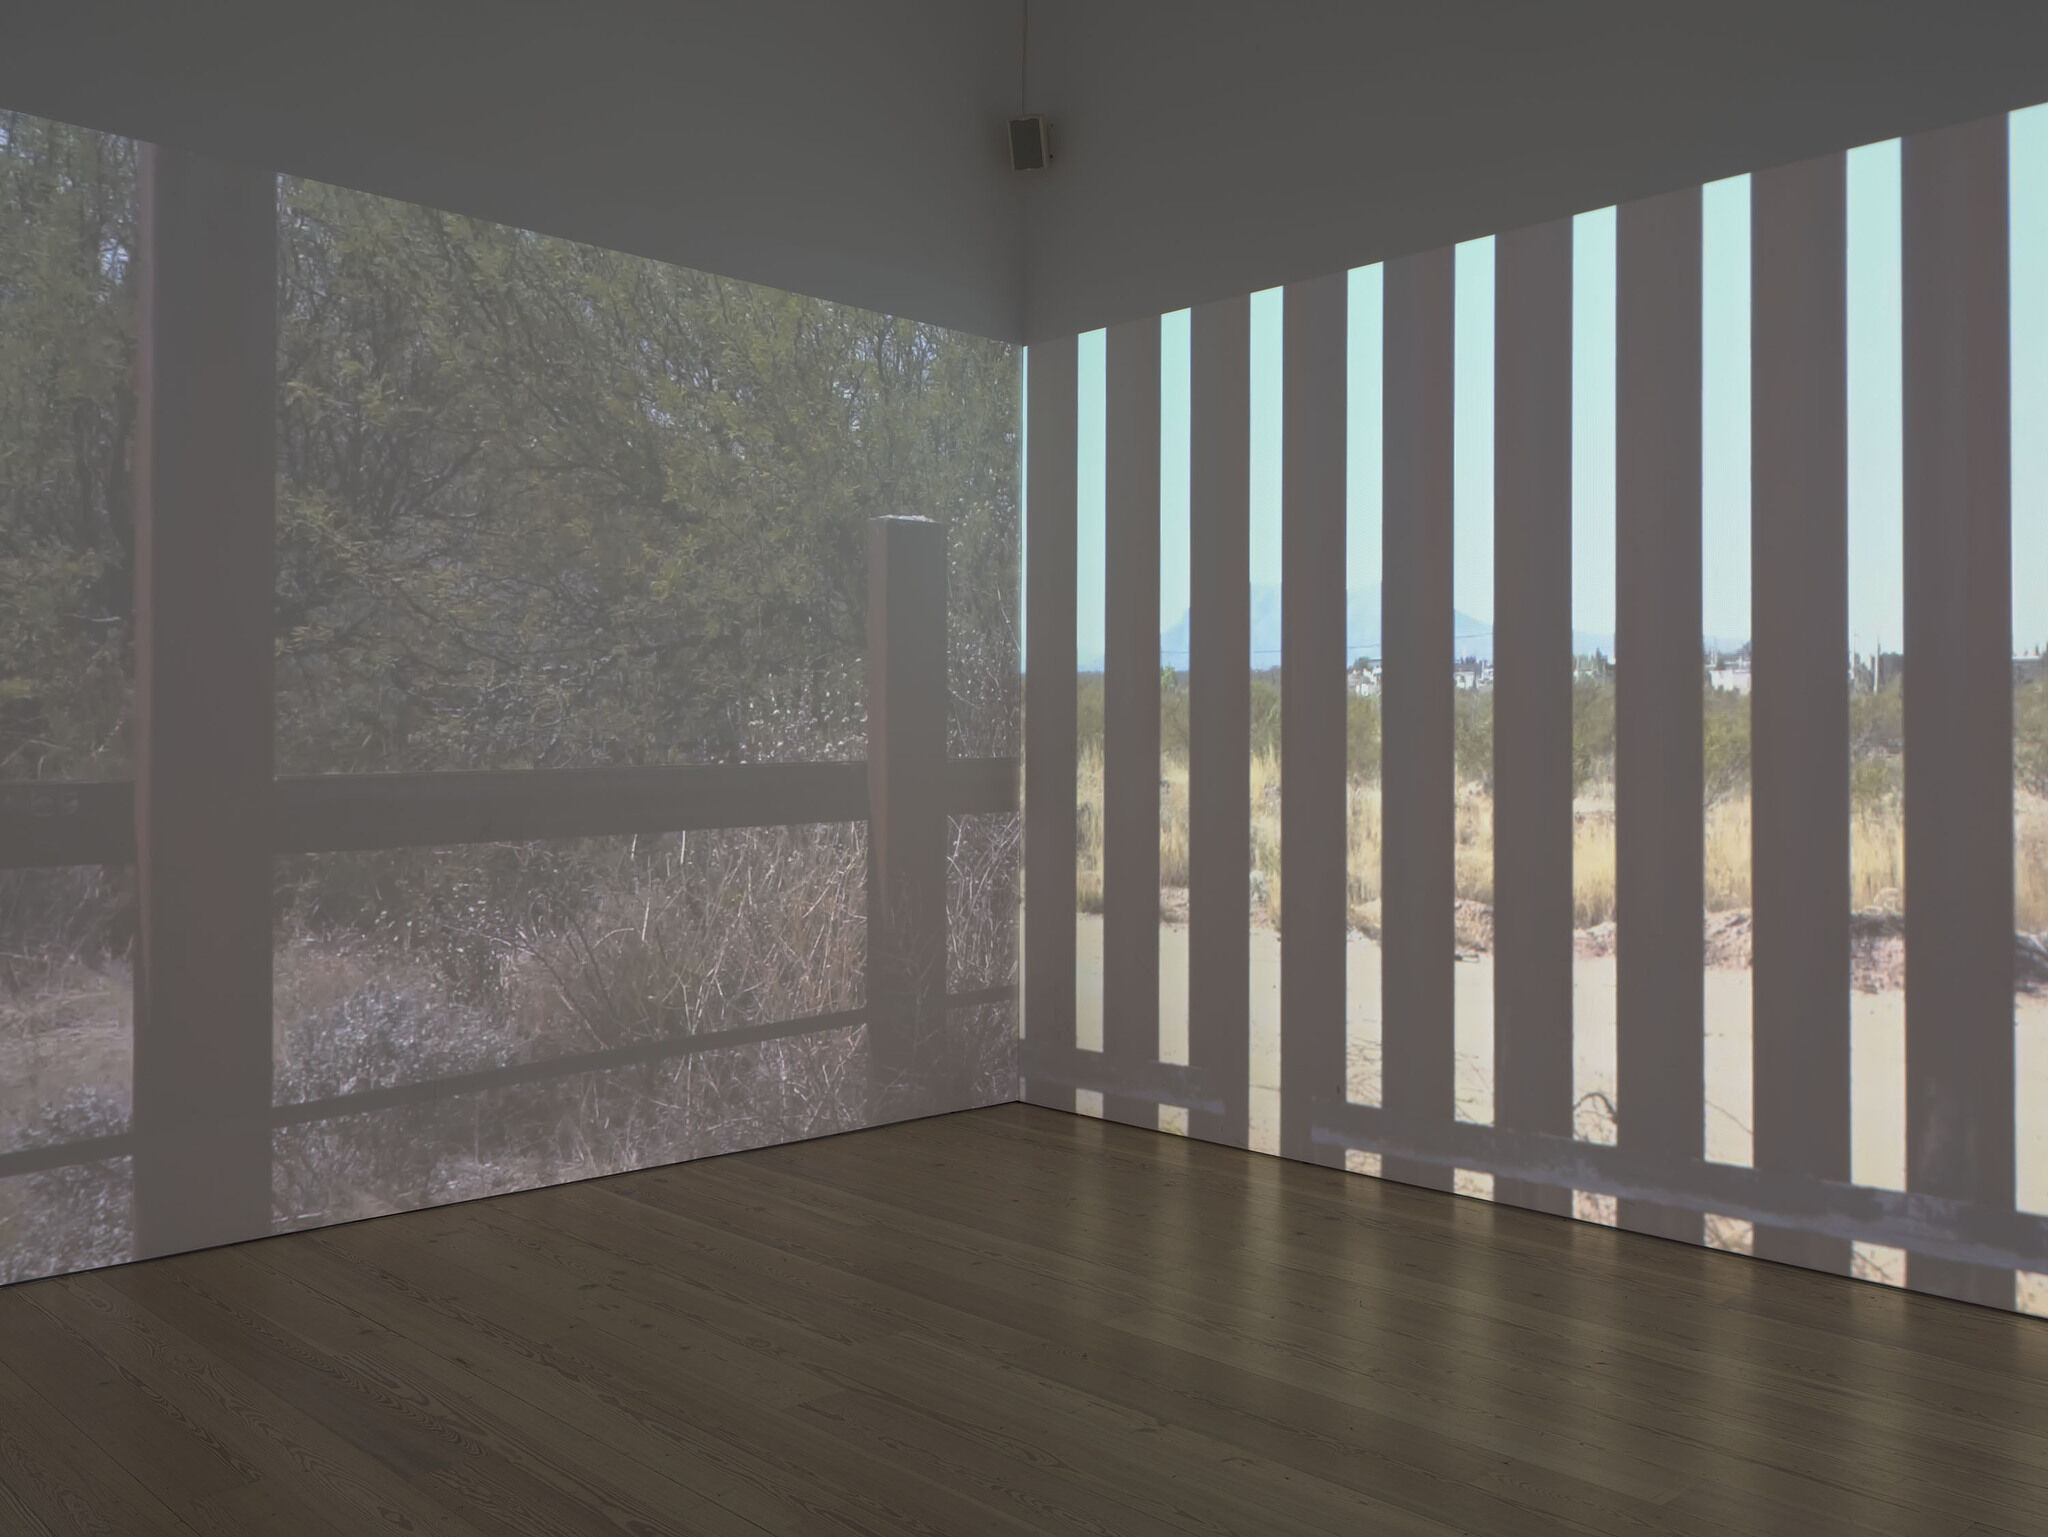 A gallery with a video projected on the walls.